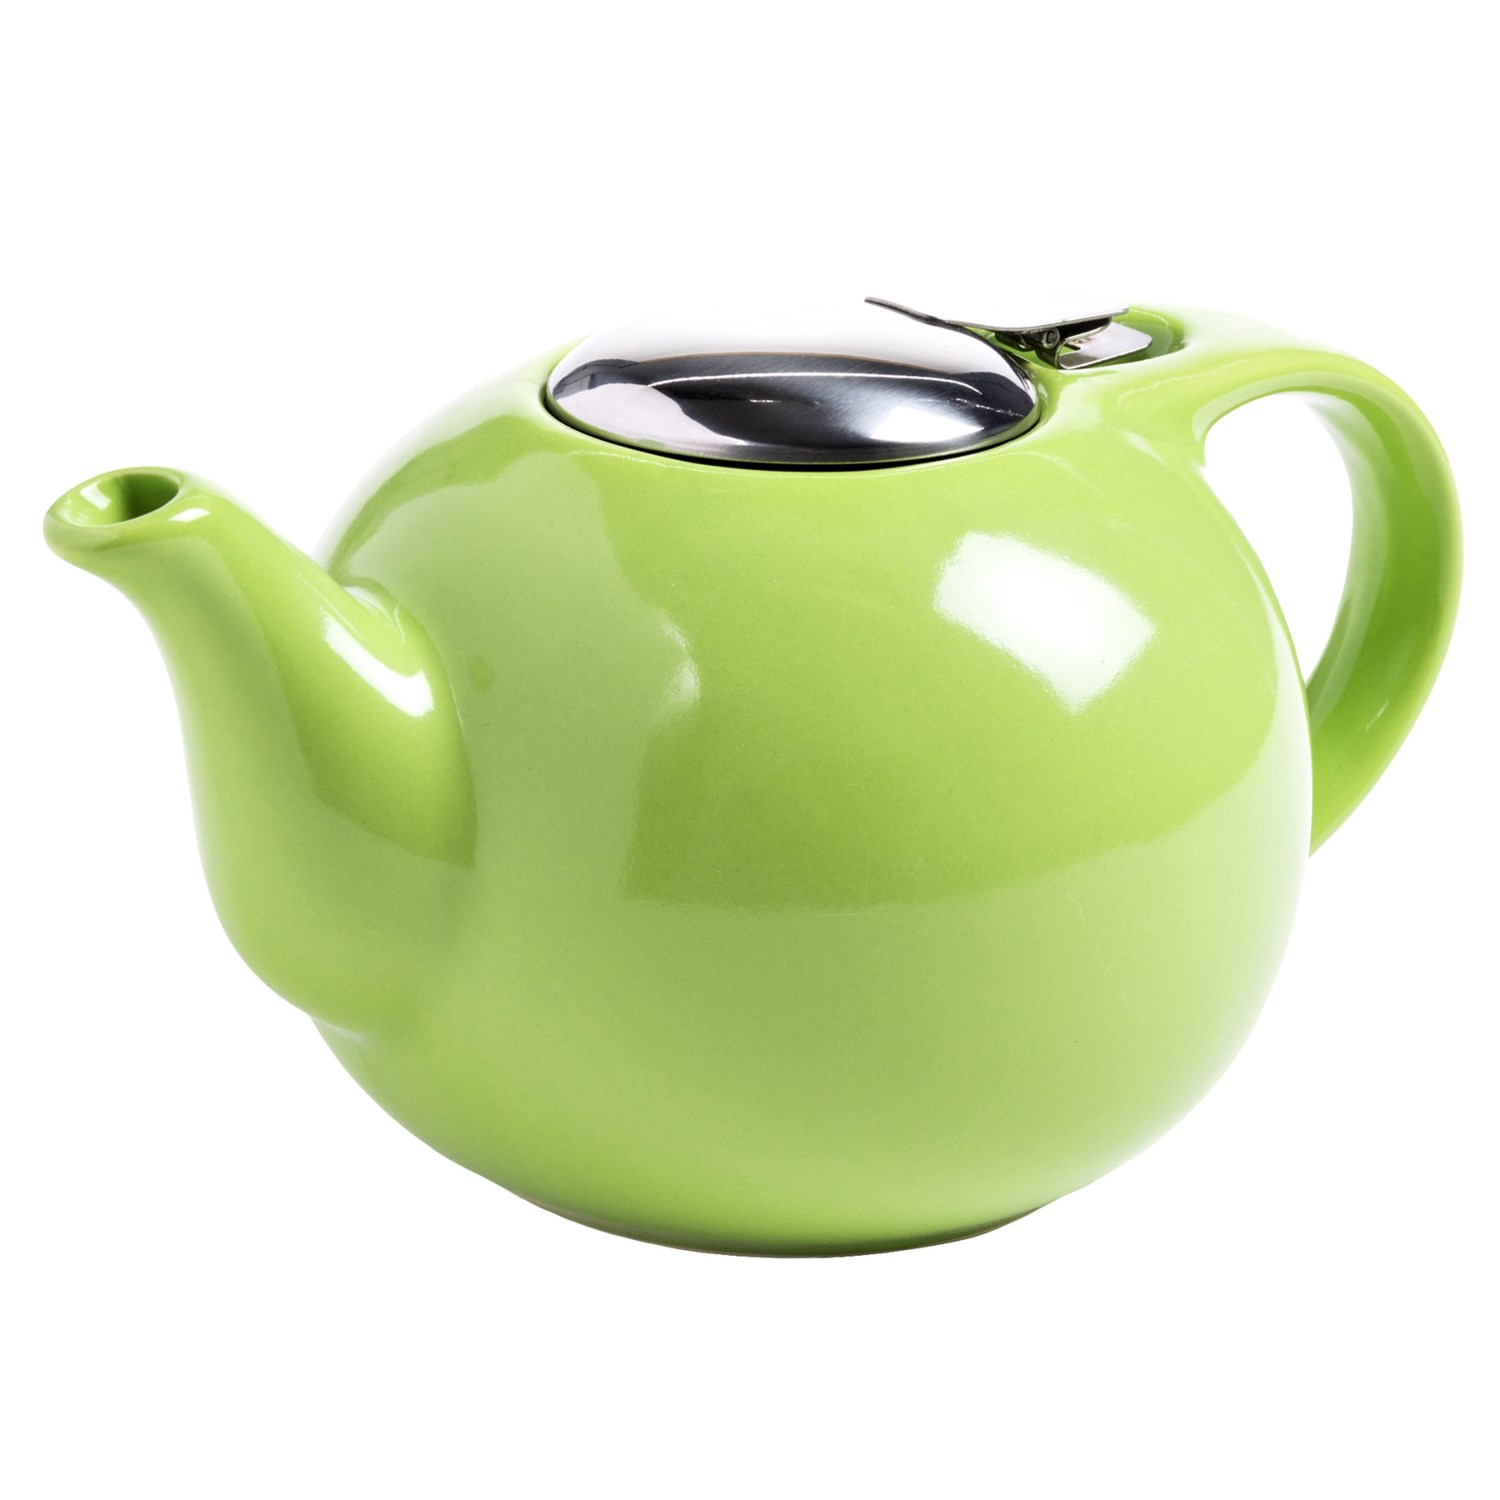 Ceramic Teapot With Infuser Creative Home Ceramic Teapot With Infuser 48 Fl Oz